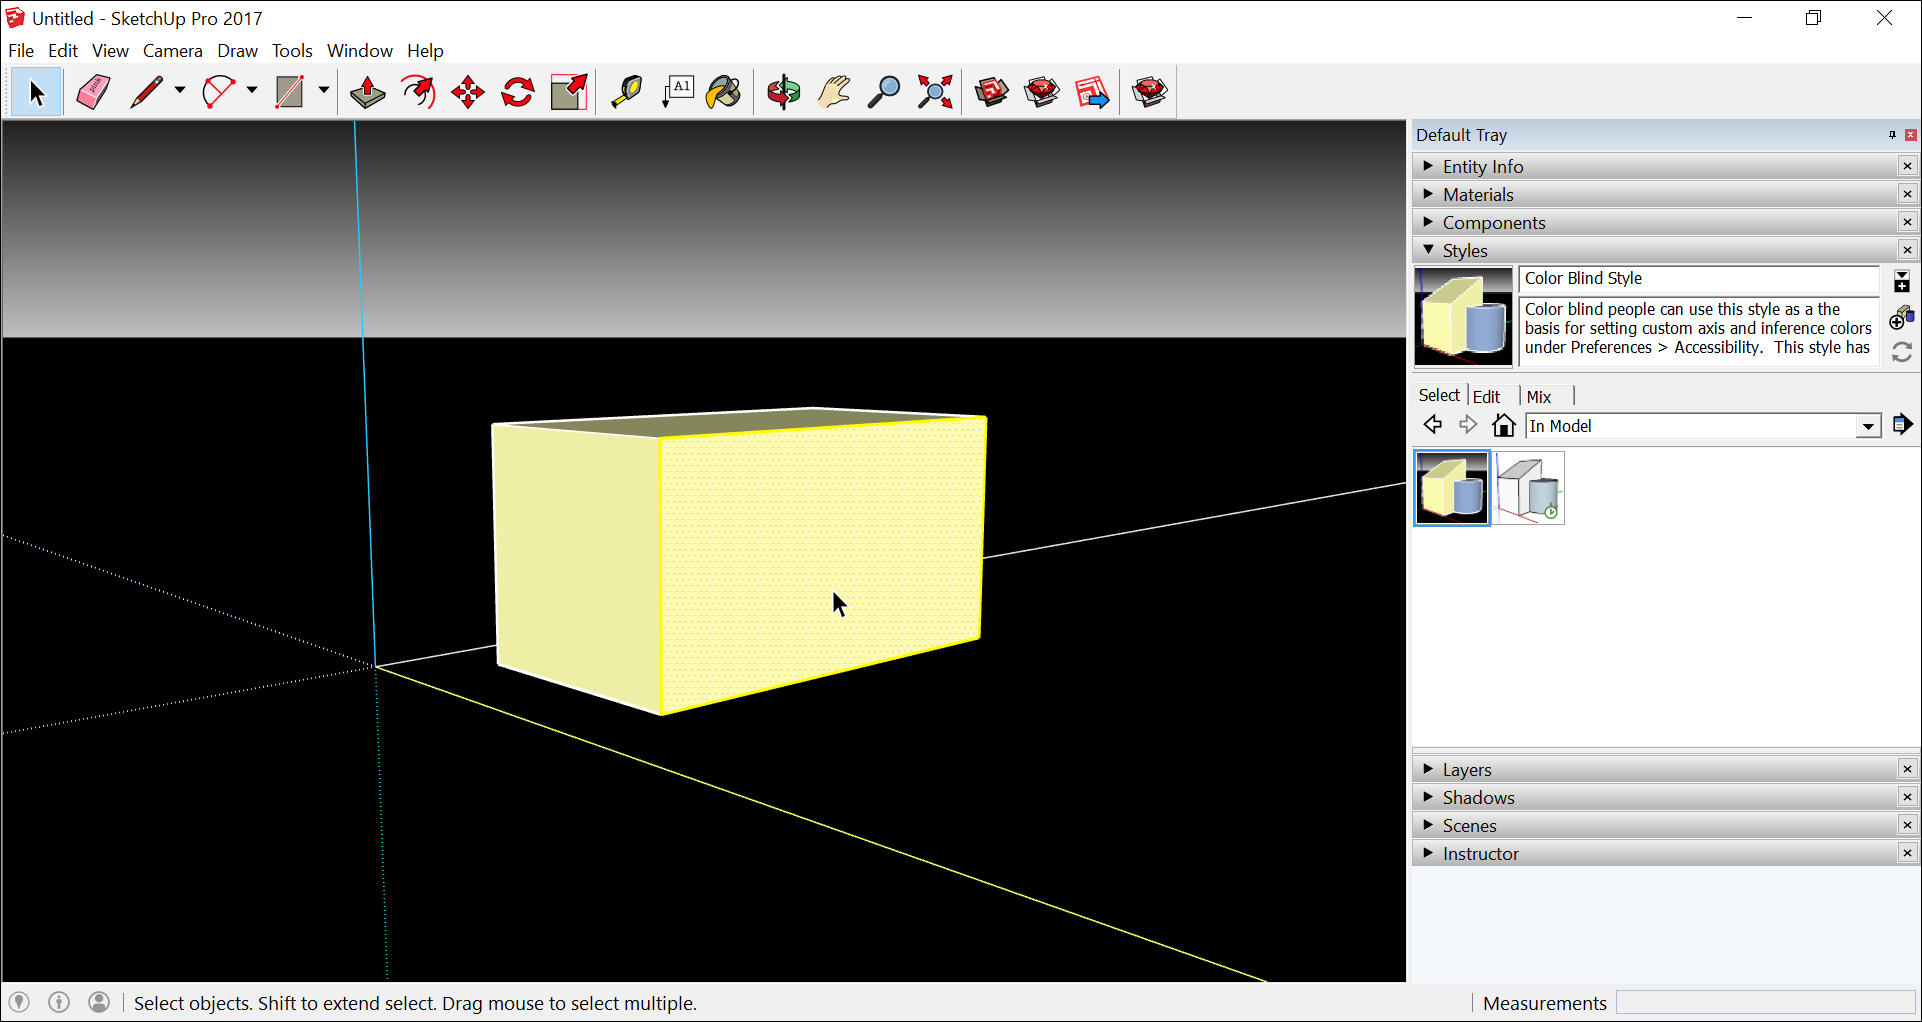 In SketchUp, apply the Color Blind style and customize axes colors to improve visibility of onscreen 3D modeling cues.